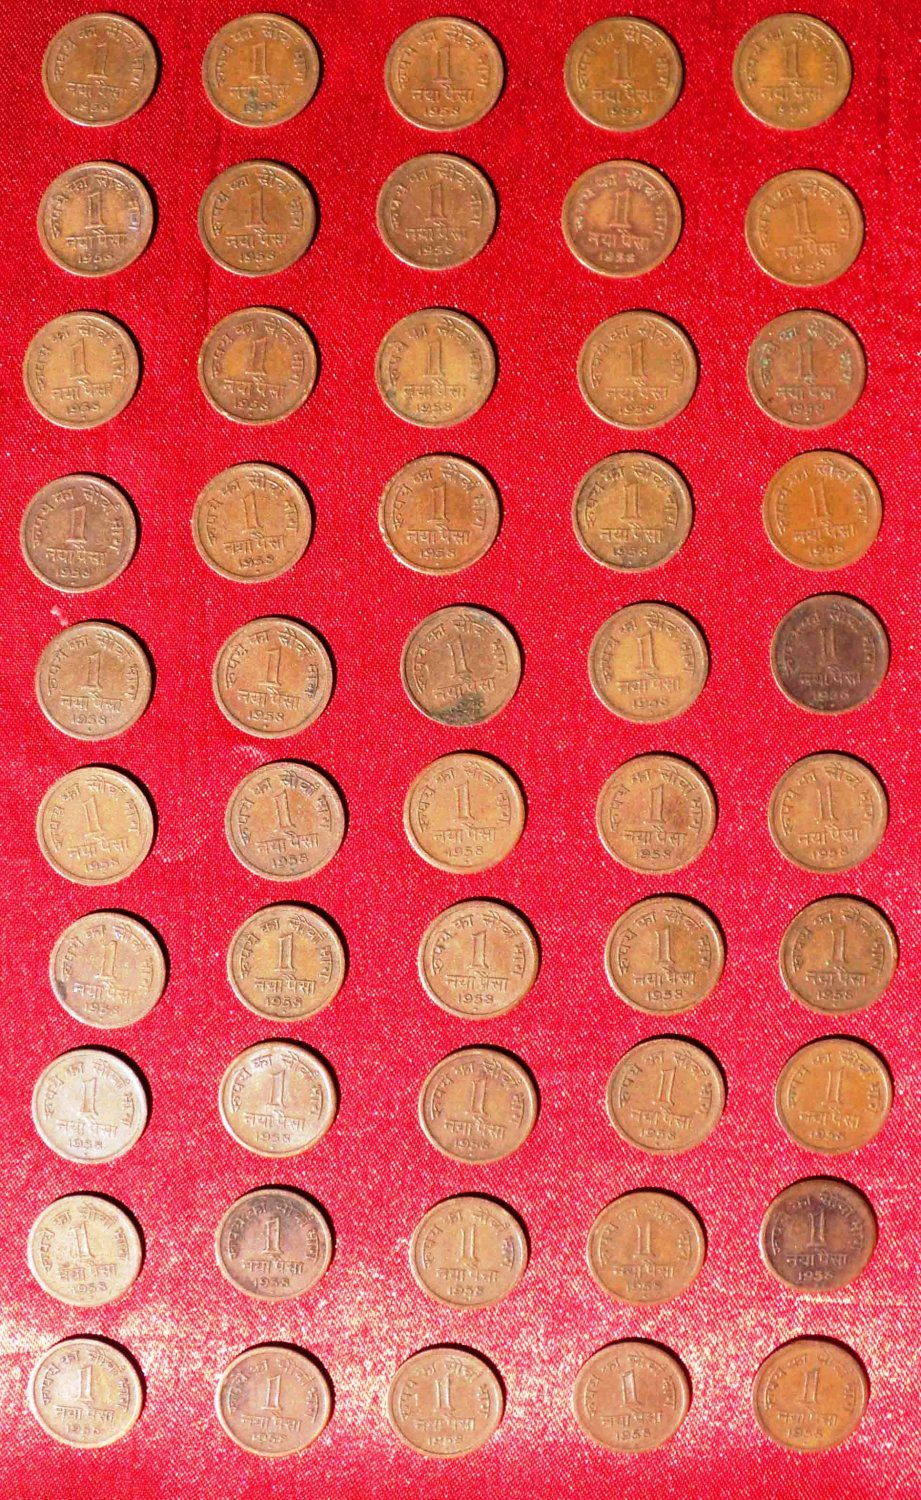 Bronze coin year 1958 One Paisa India - Scarce Coin